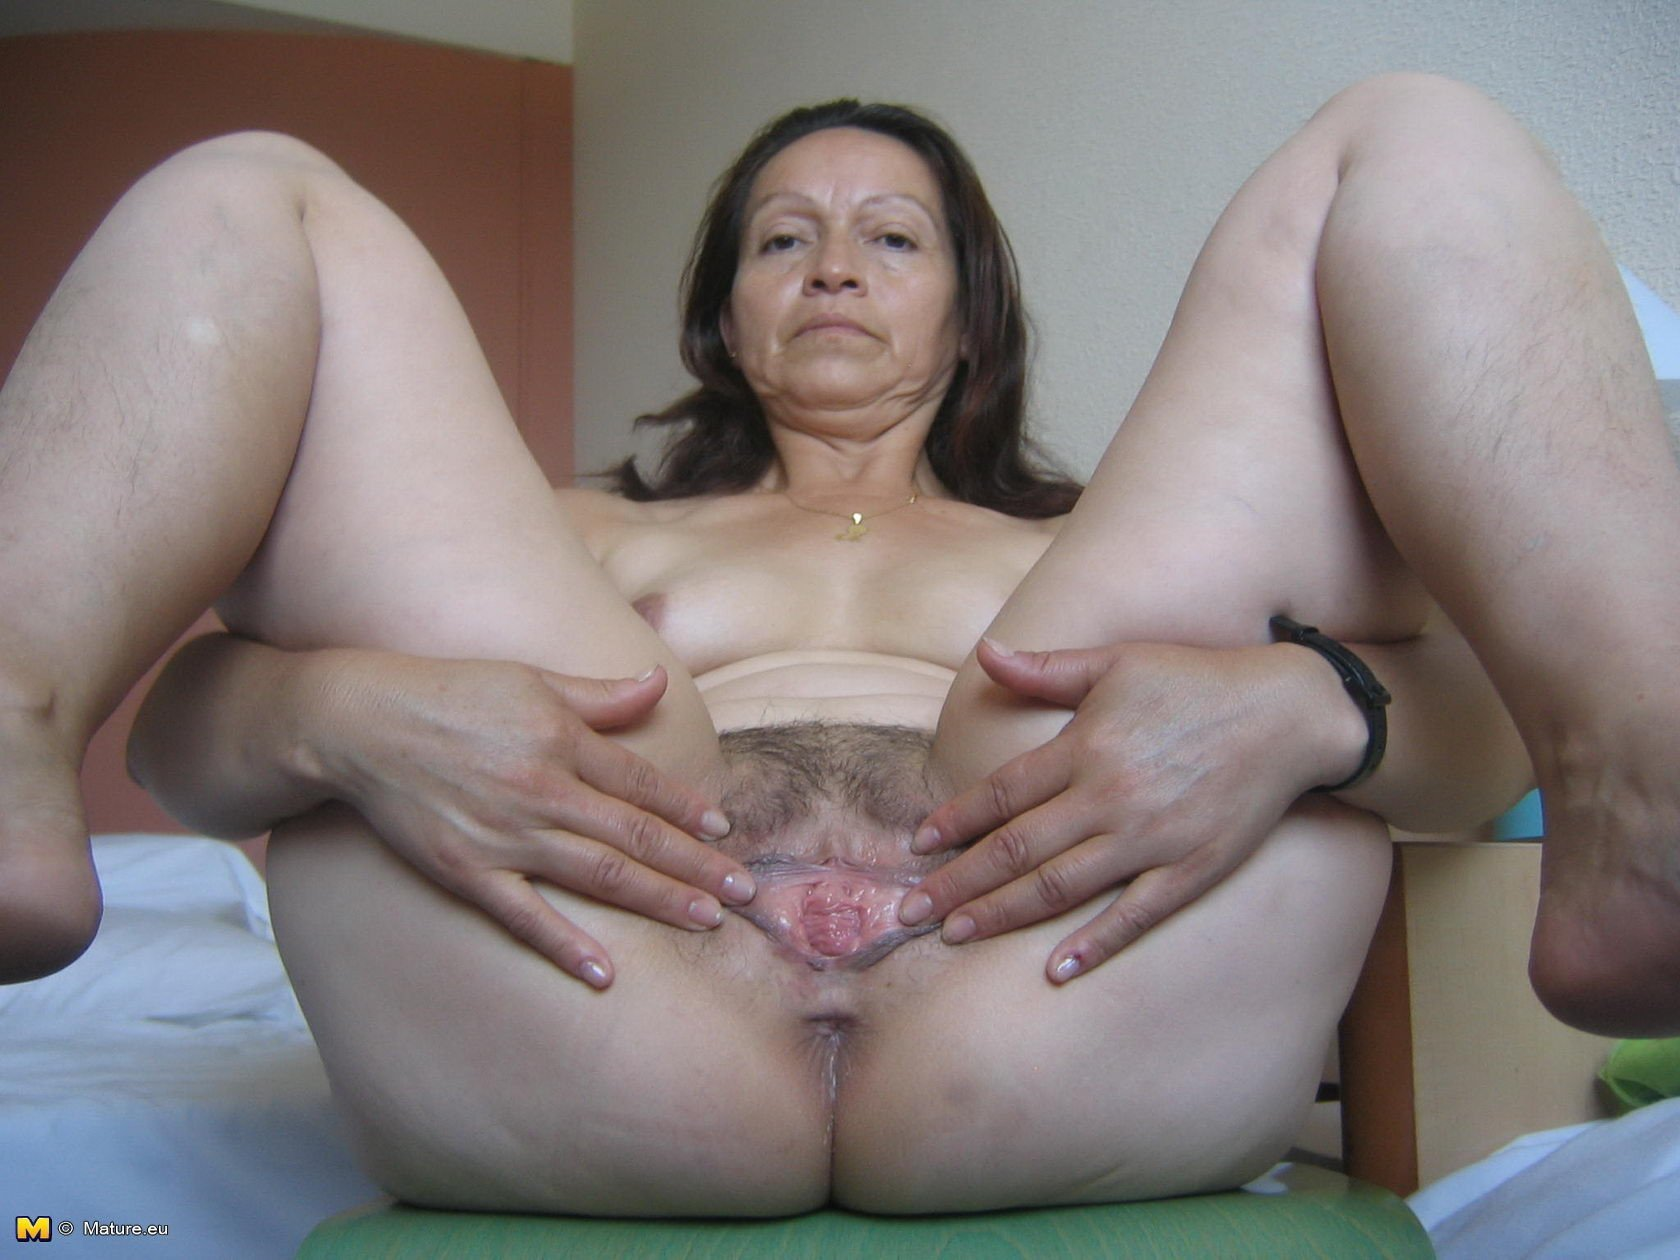 4K Hairy Porn mature bbw hairy porn trends adult site pic. comments: 1